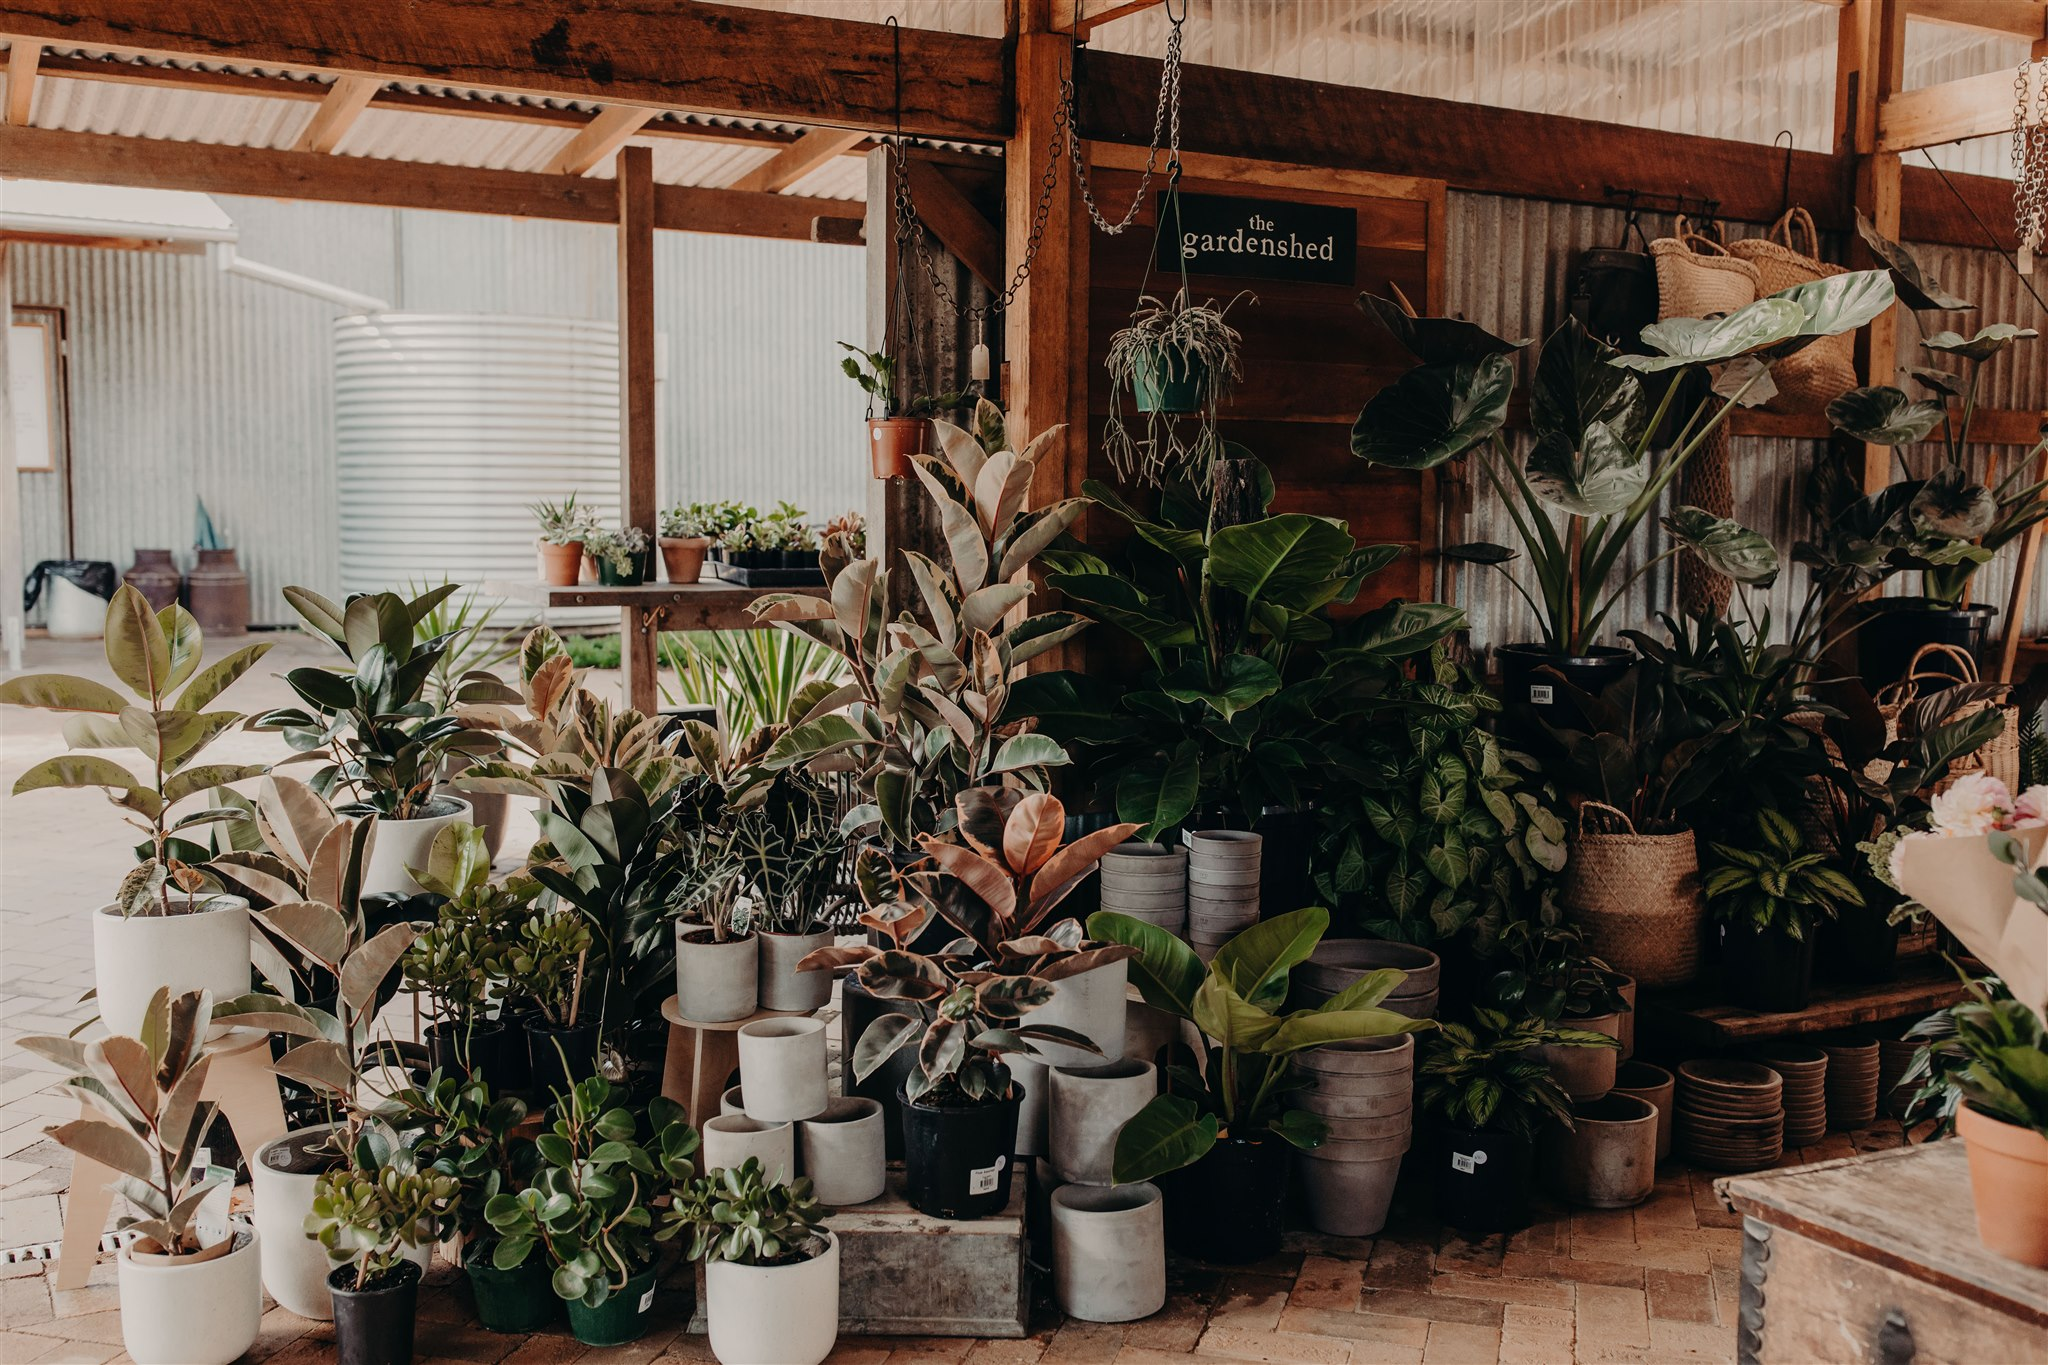 the shed - Here, amongst the lush indoor plants, gardening books and tools, you'll likely find us, hands in a tray of soil, sharing our tips for incorporating sustainable gardening practice into your garden, or musing on the wonders of slow living.